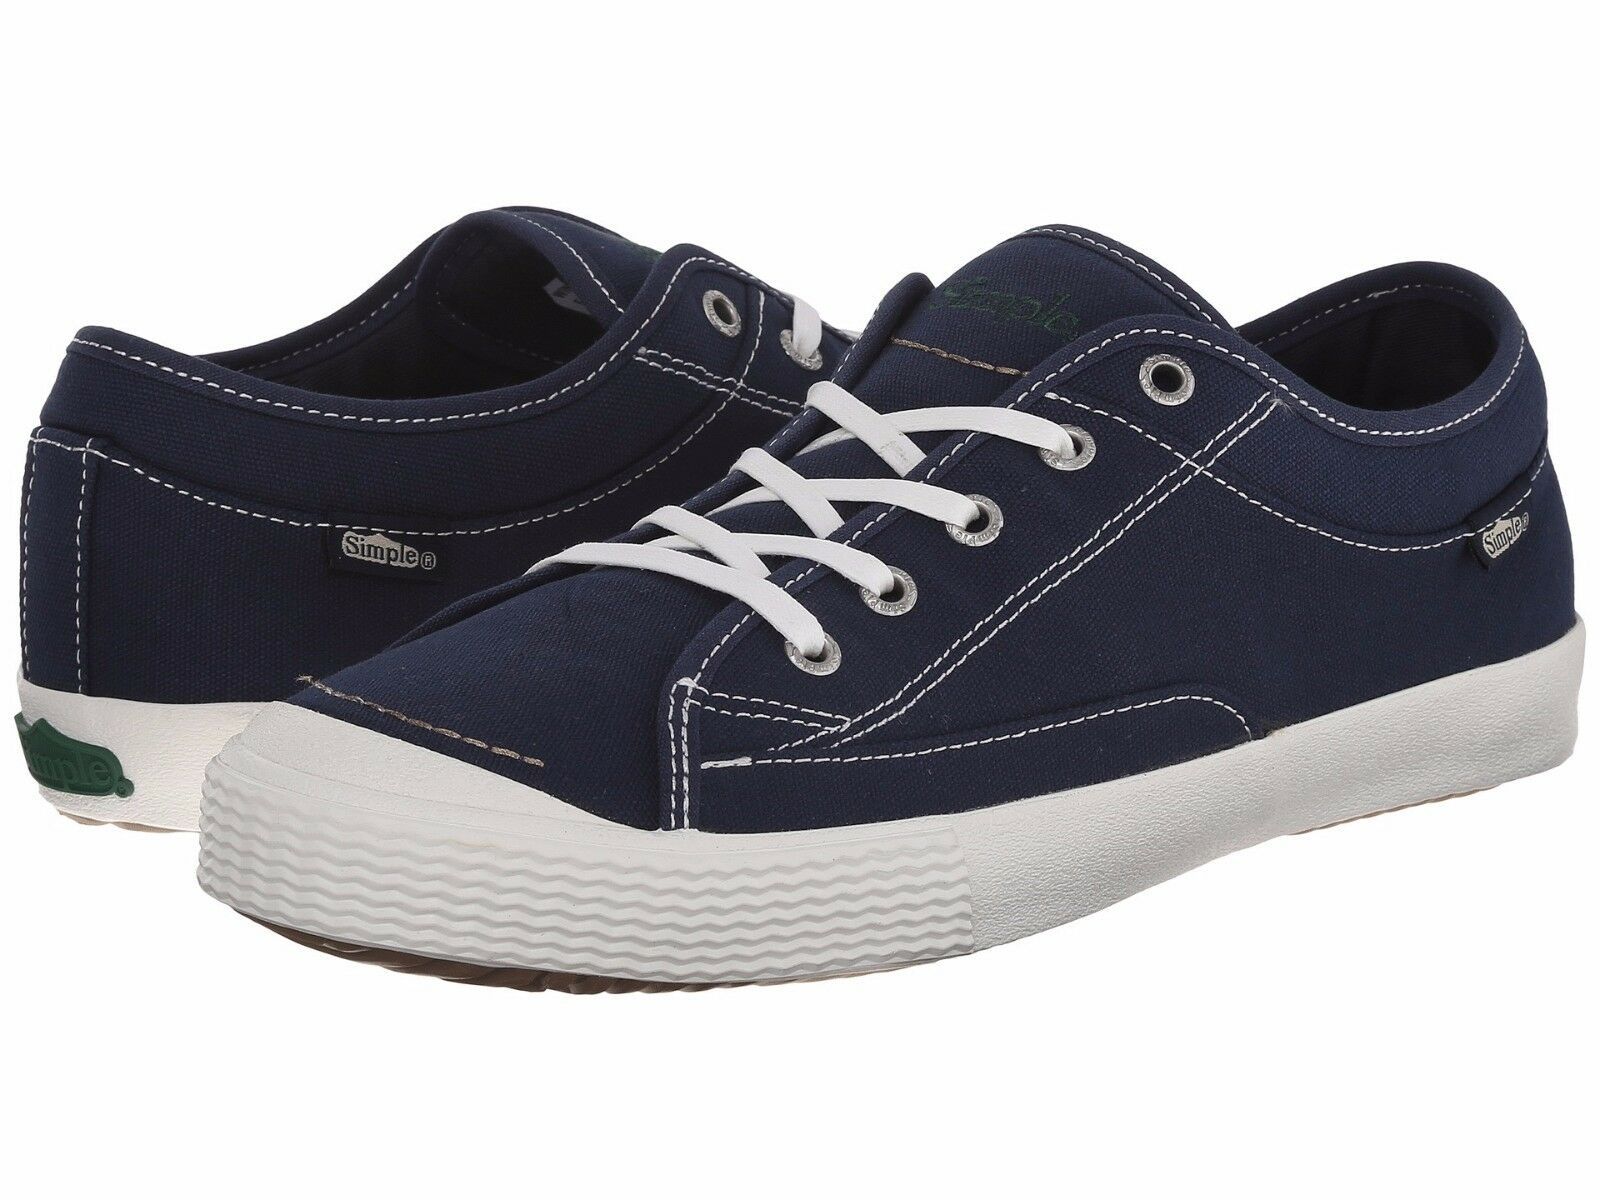 Simple New Men's Casual Boy Sneaker Blue Wingman Trainers Skater Casual Men's Fashions Shoes 797b43